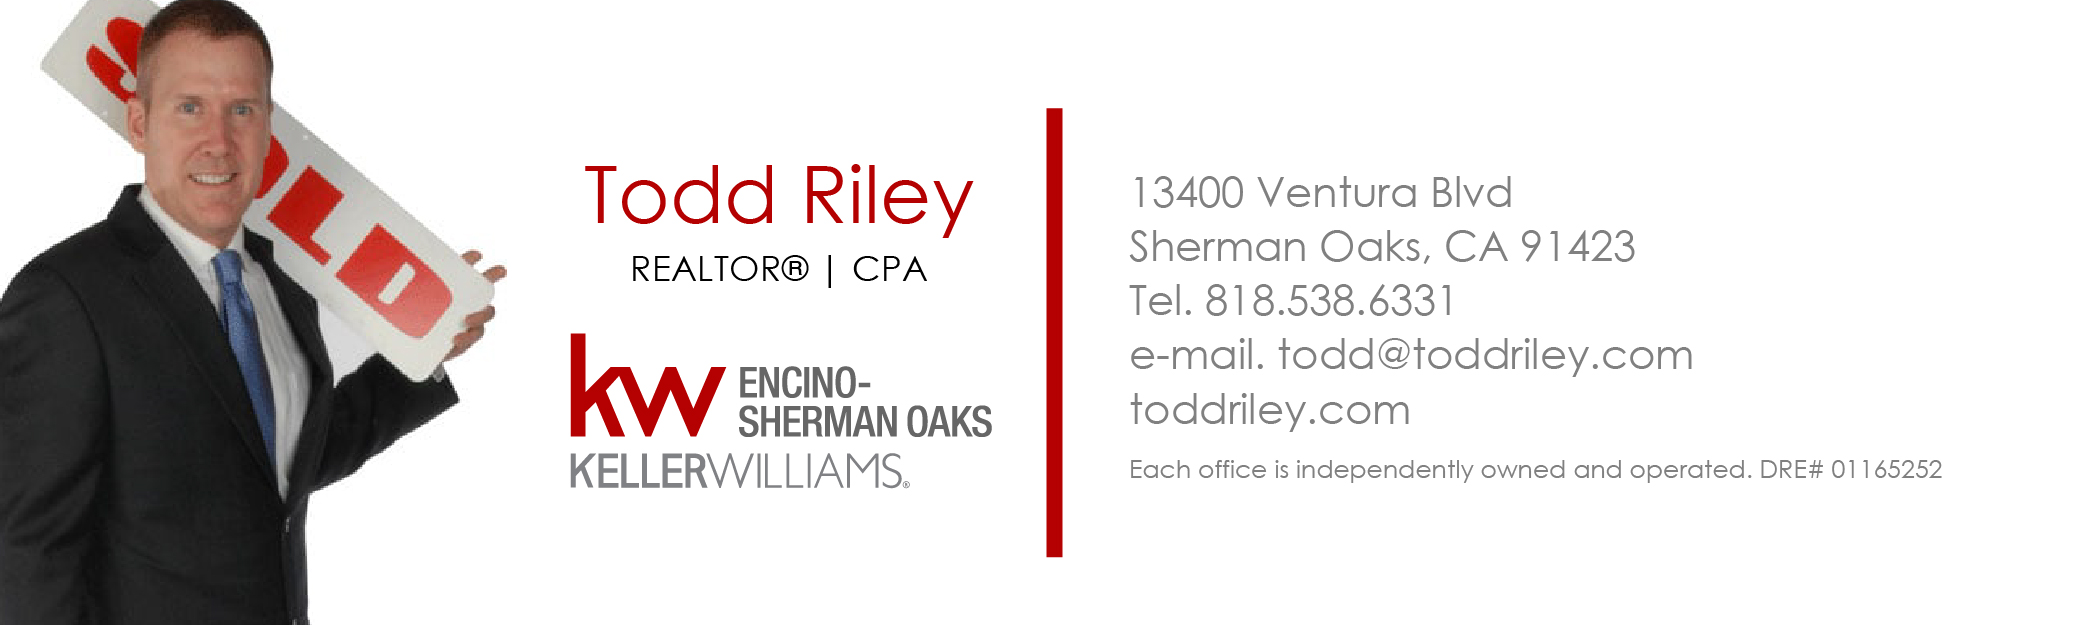 Todd Riley Real Estate